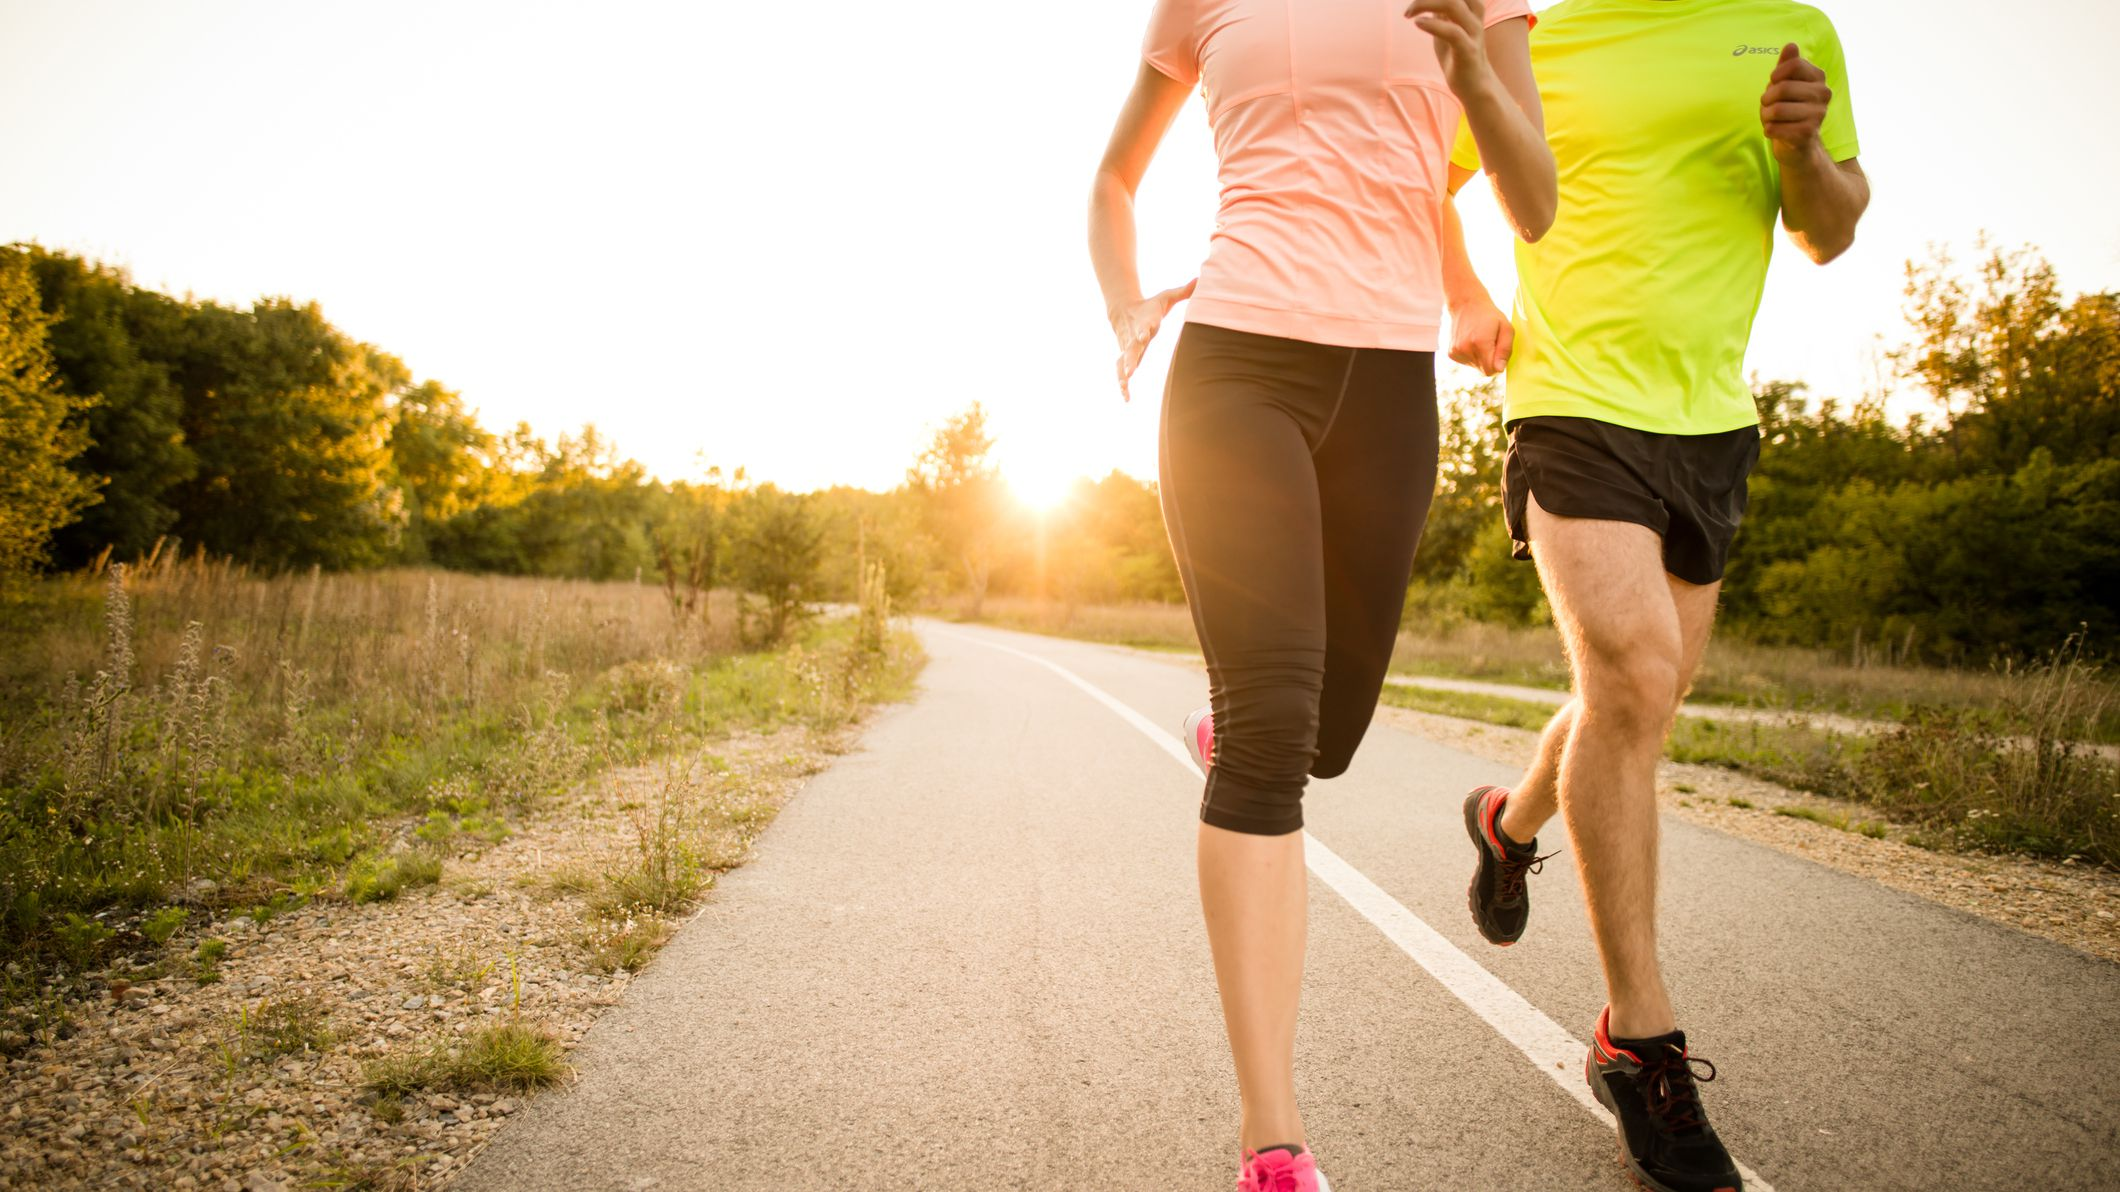 Motivation and Goal-Setting for Exercise